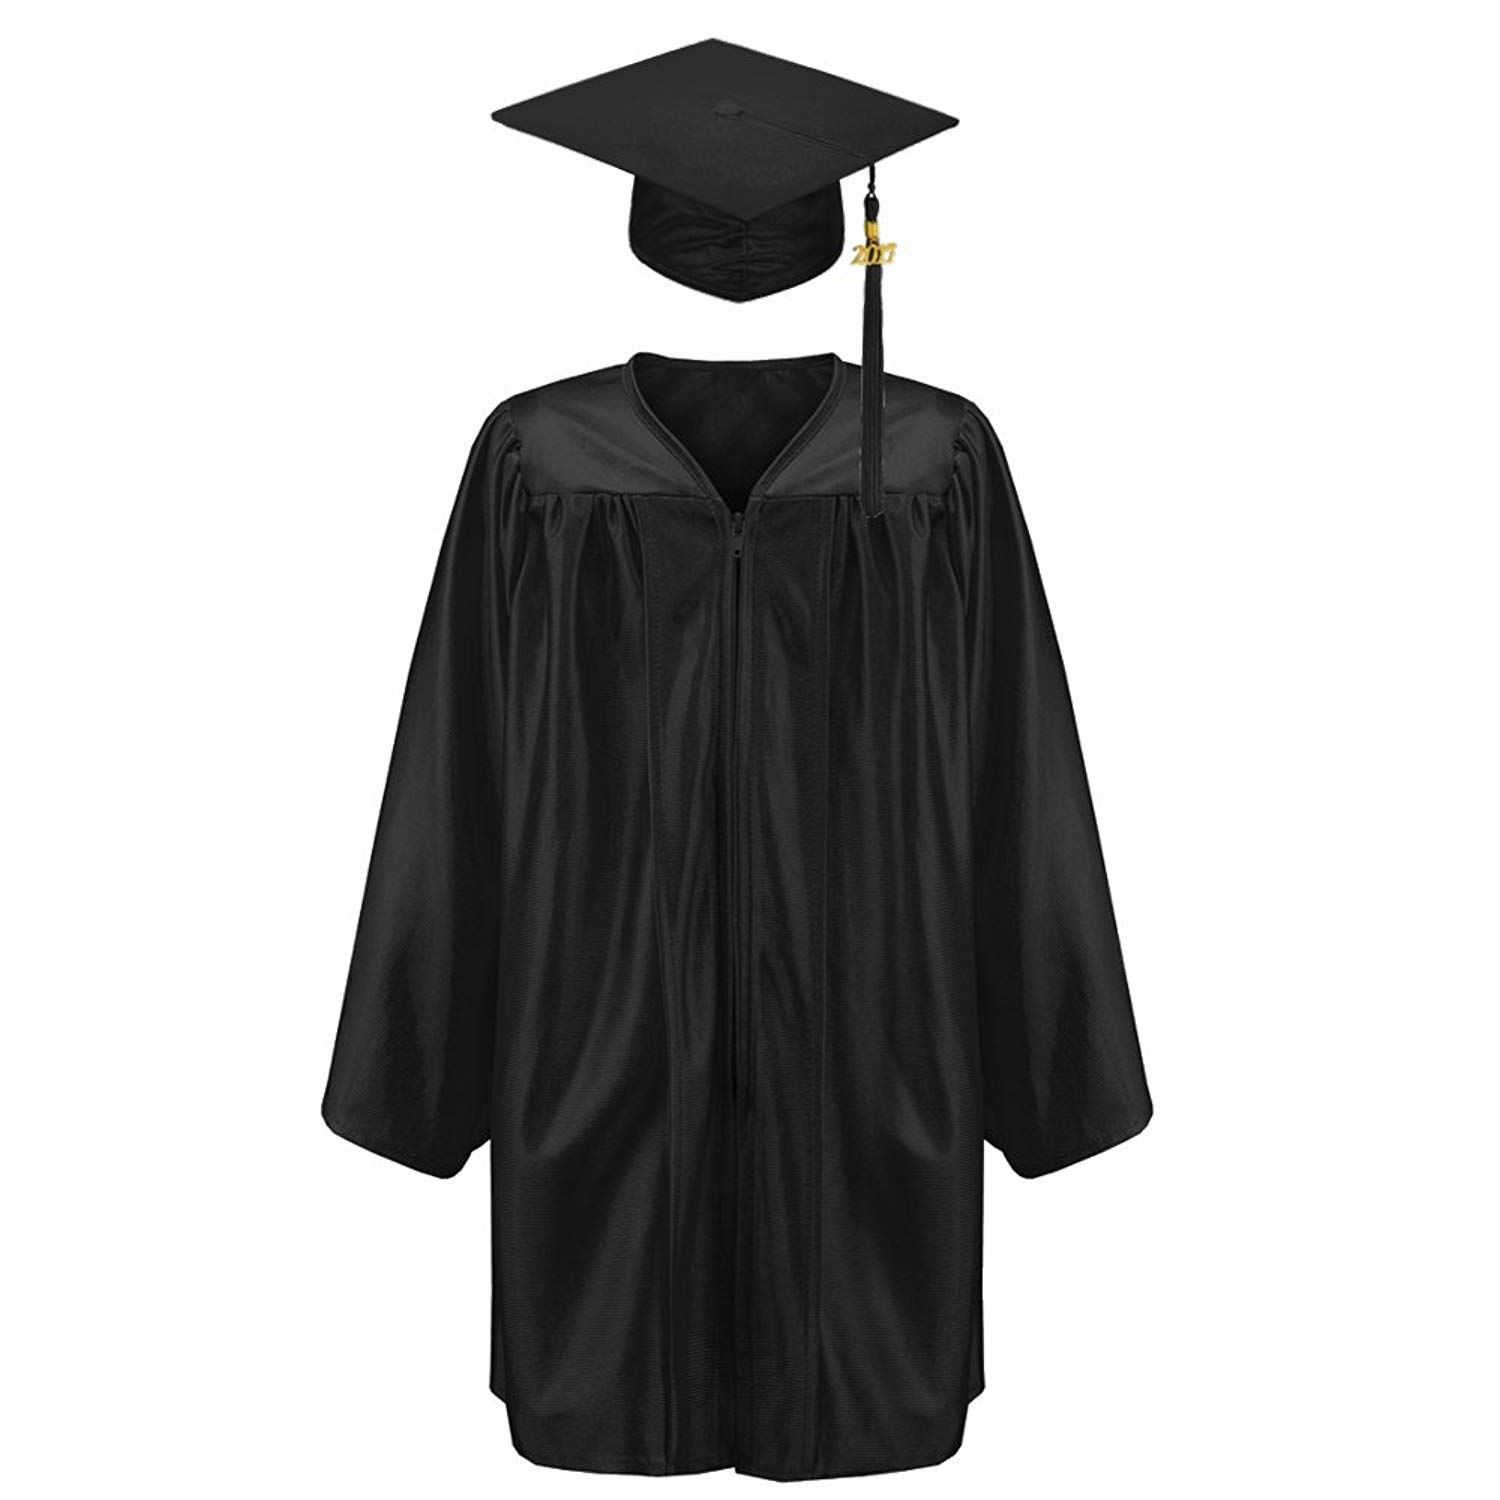 Robe Depot Unisex Shiny Kindergarten Graduation Gown Cap Tassel 2018 Package, Black,S